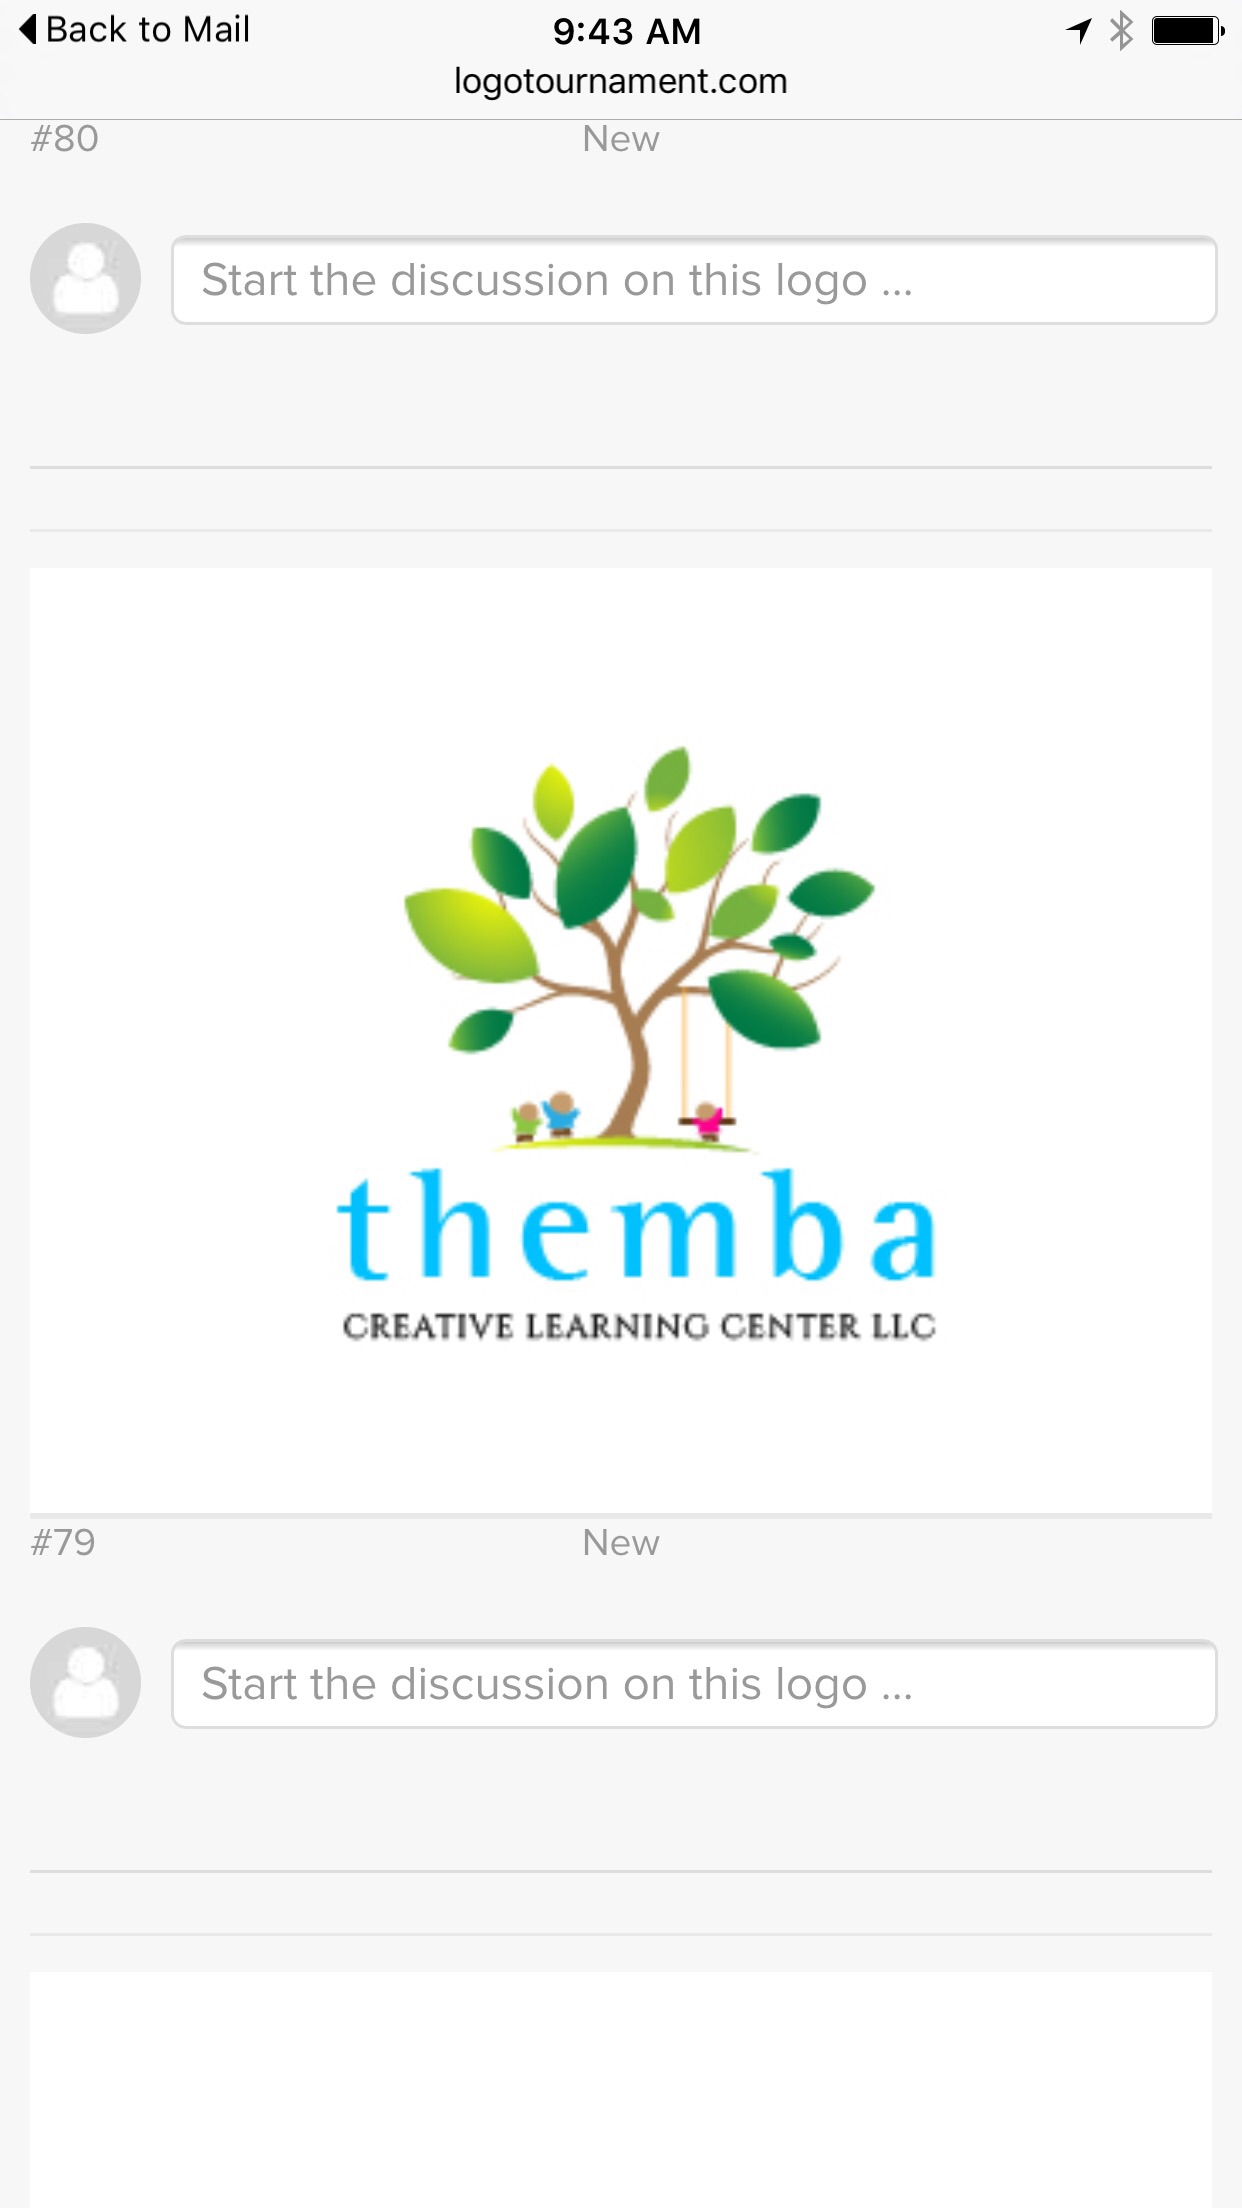 Themba Creative Learning Center, LLC